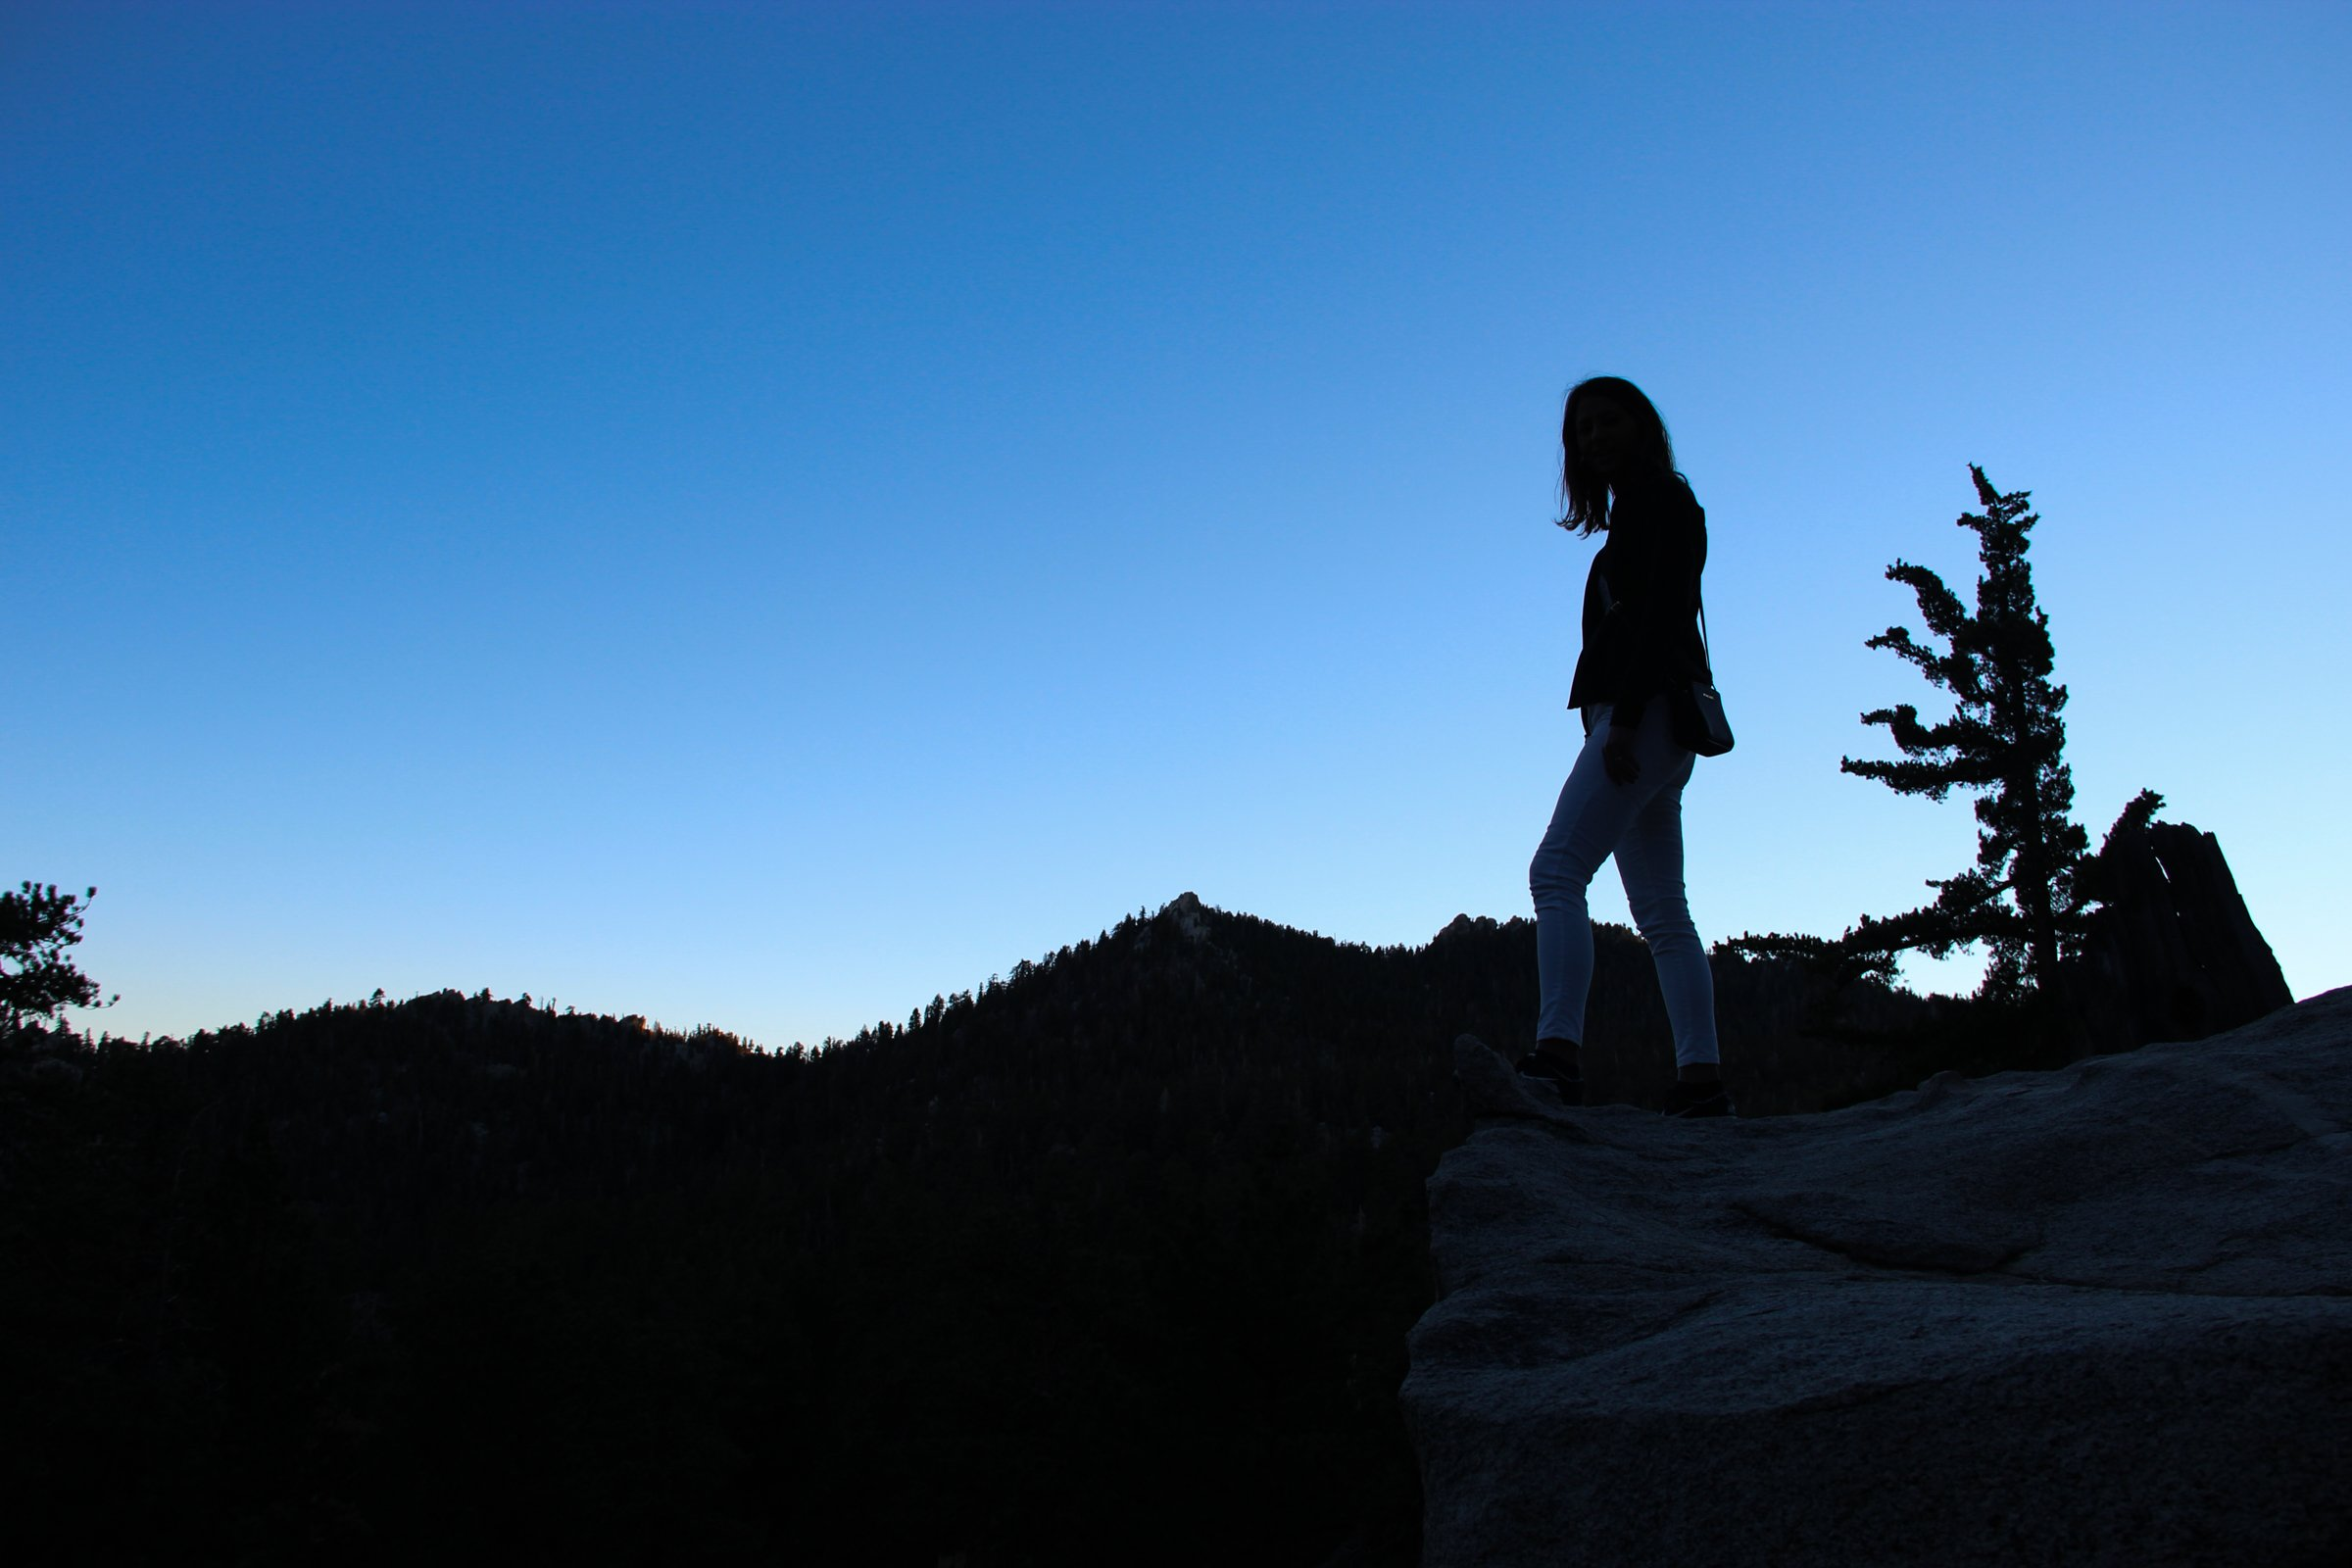 Silhouette of Woman Standing on Mountain